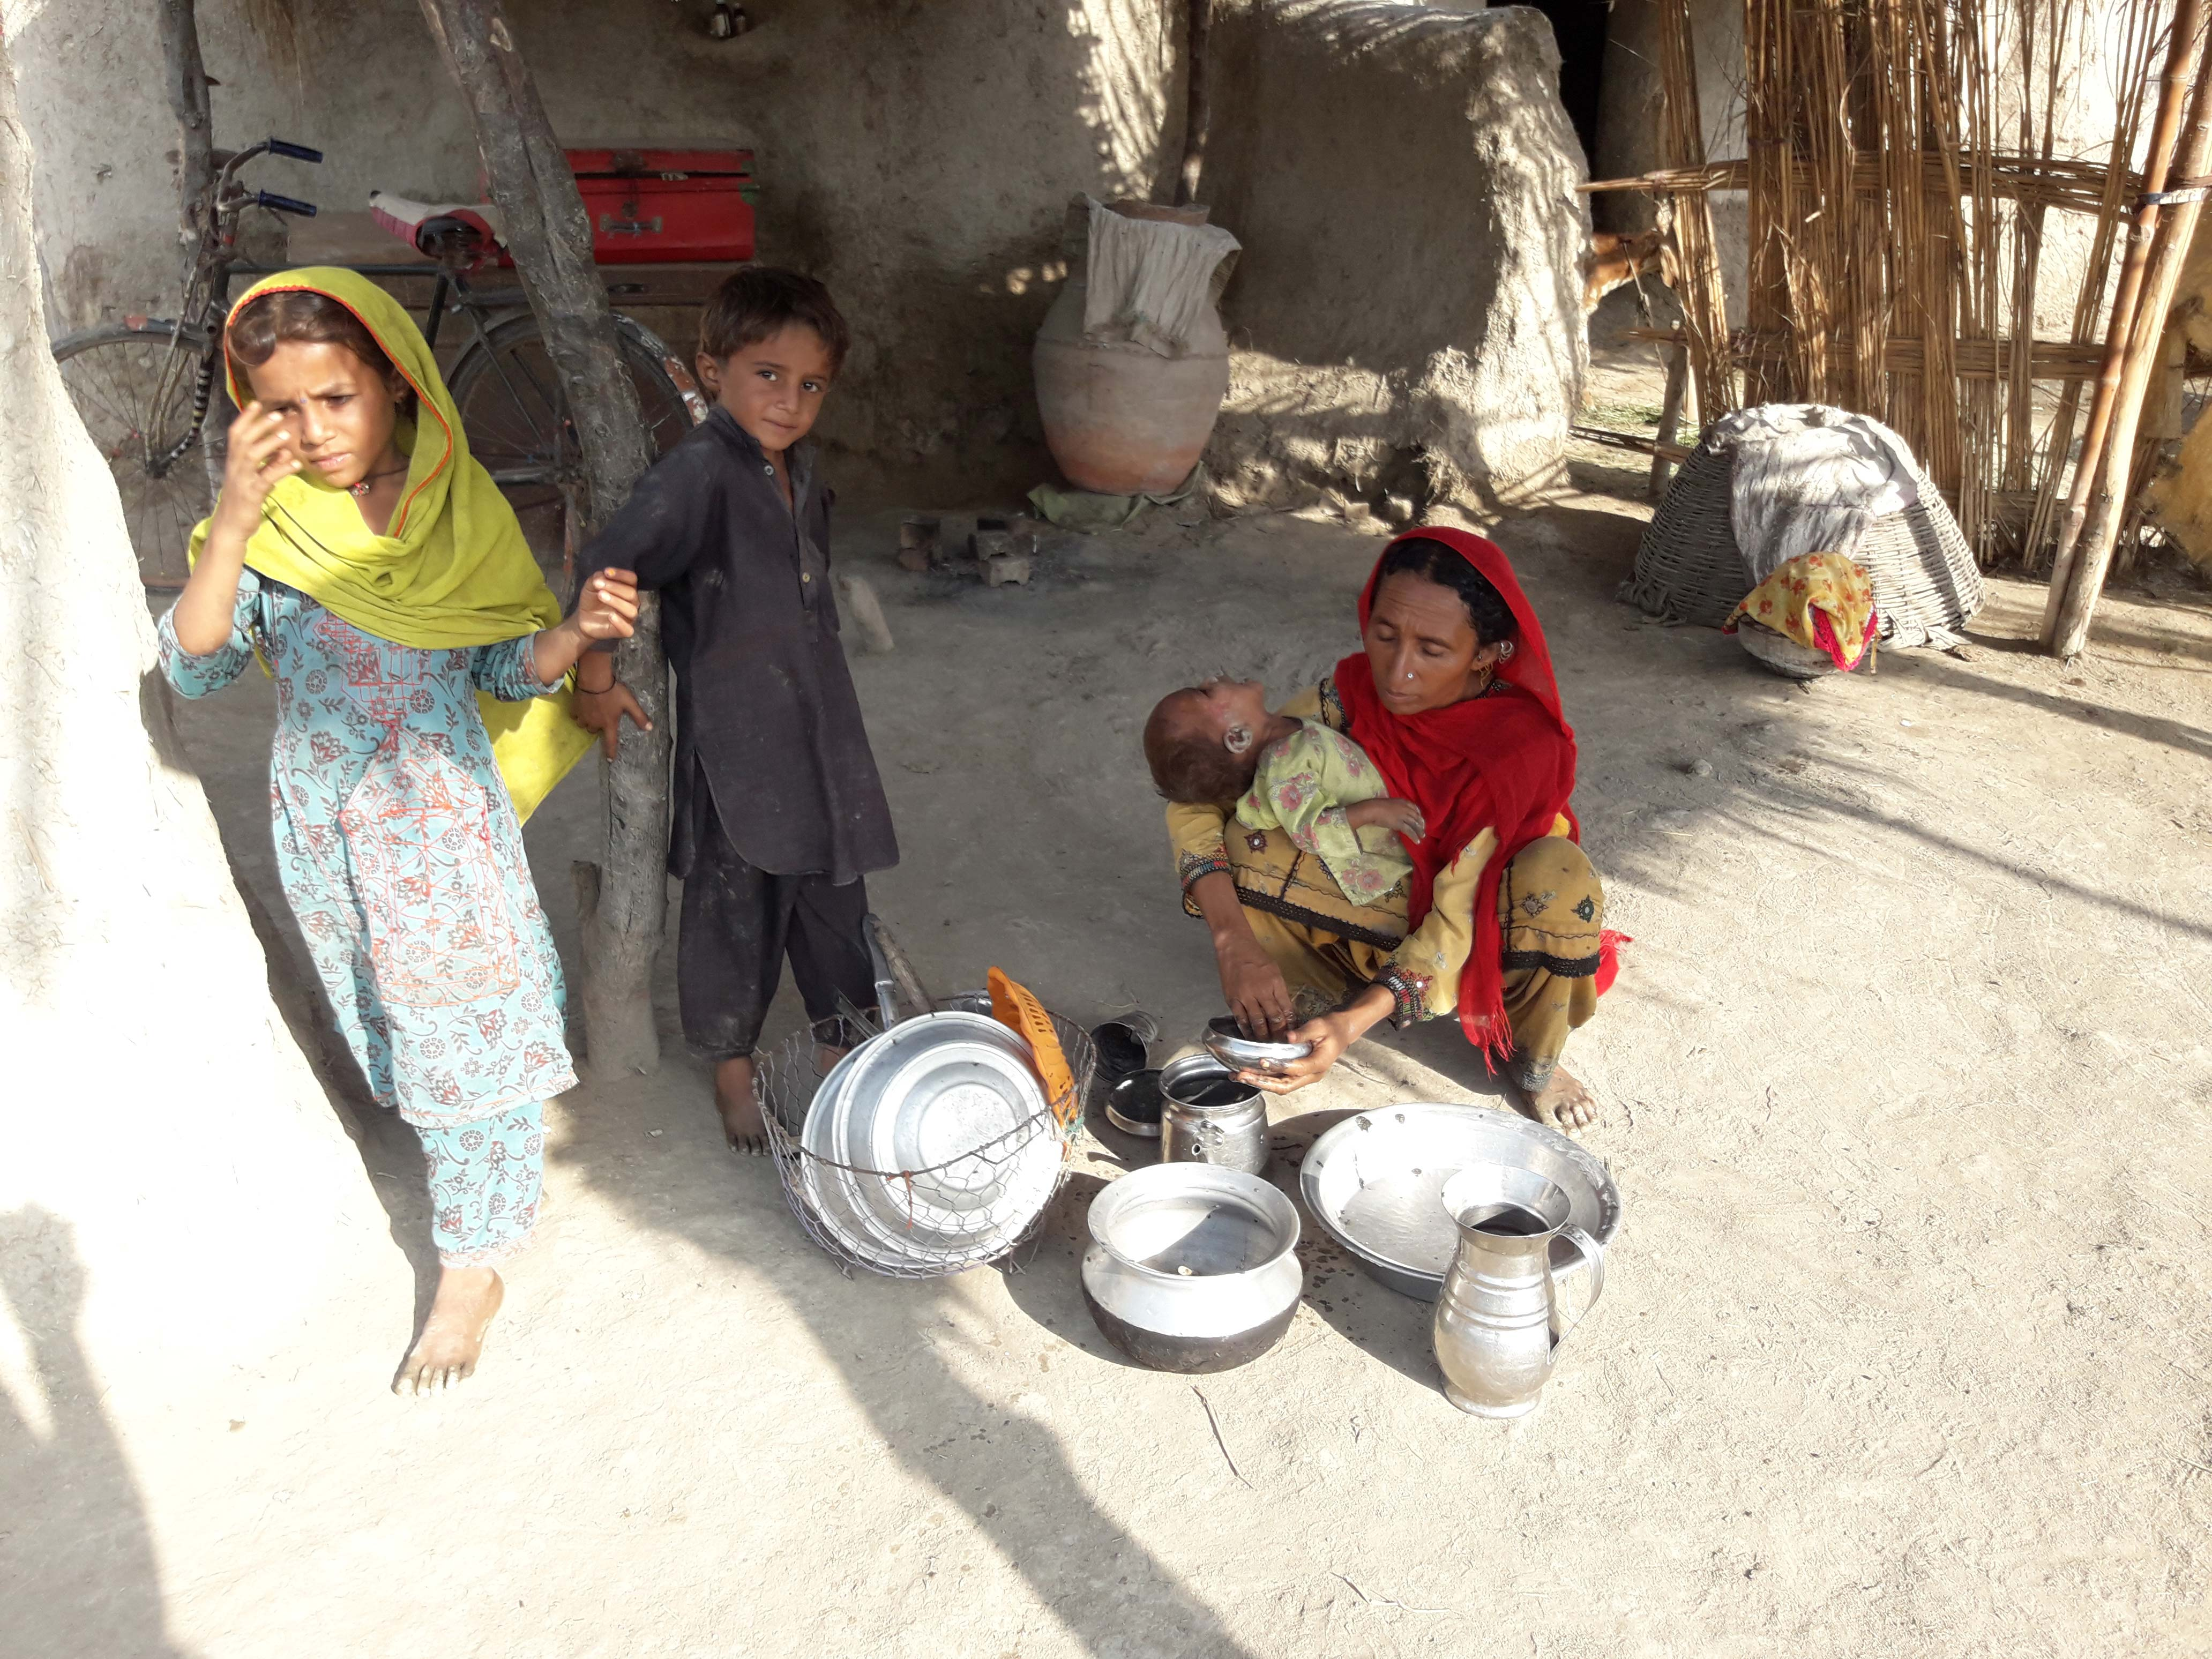 Village women manage children, household chores and farming